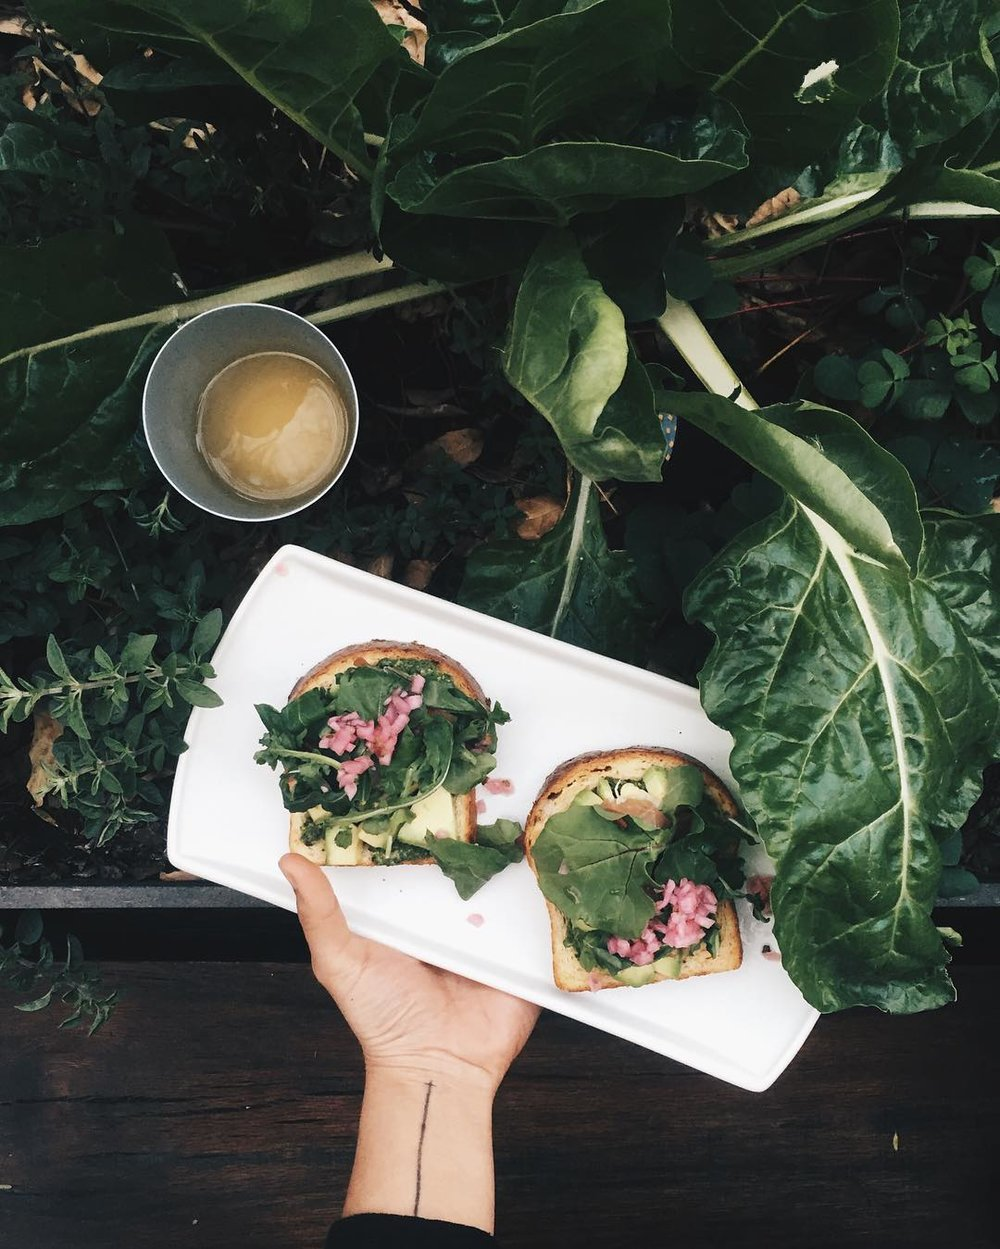 ultra-visual: ¡Ya abrimos TEO! There's nothing fresher than our Avocado Toast in @teo_mx 🍴🍞🍃 Ya pueden venir a probar las delicias del nuevo HotSpot de la Juarez en Havre 83 🍀 #GreenieLife #TeoLuncheonette #HealthyFood by lavicvic